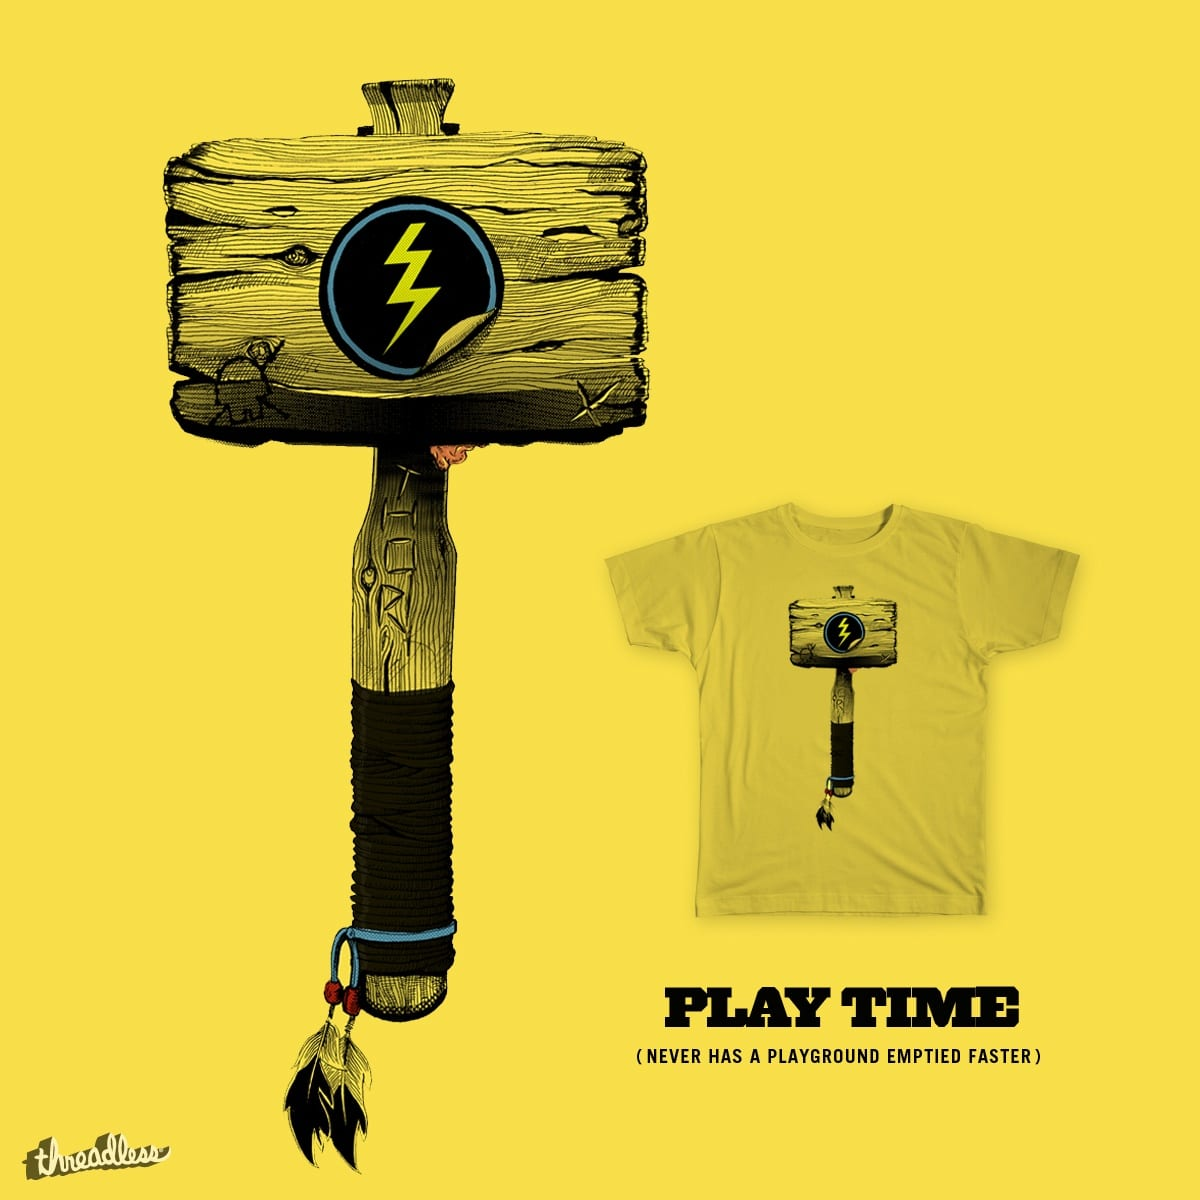 Play Time by Mr Four Fingers on Threadless